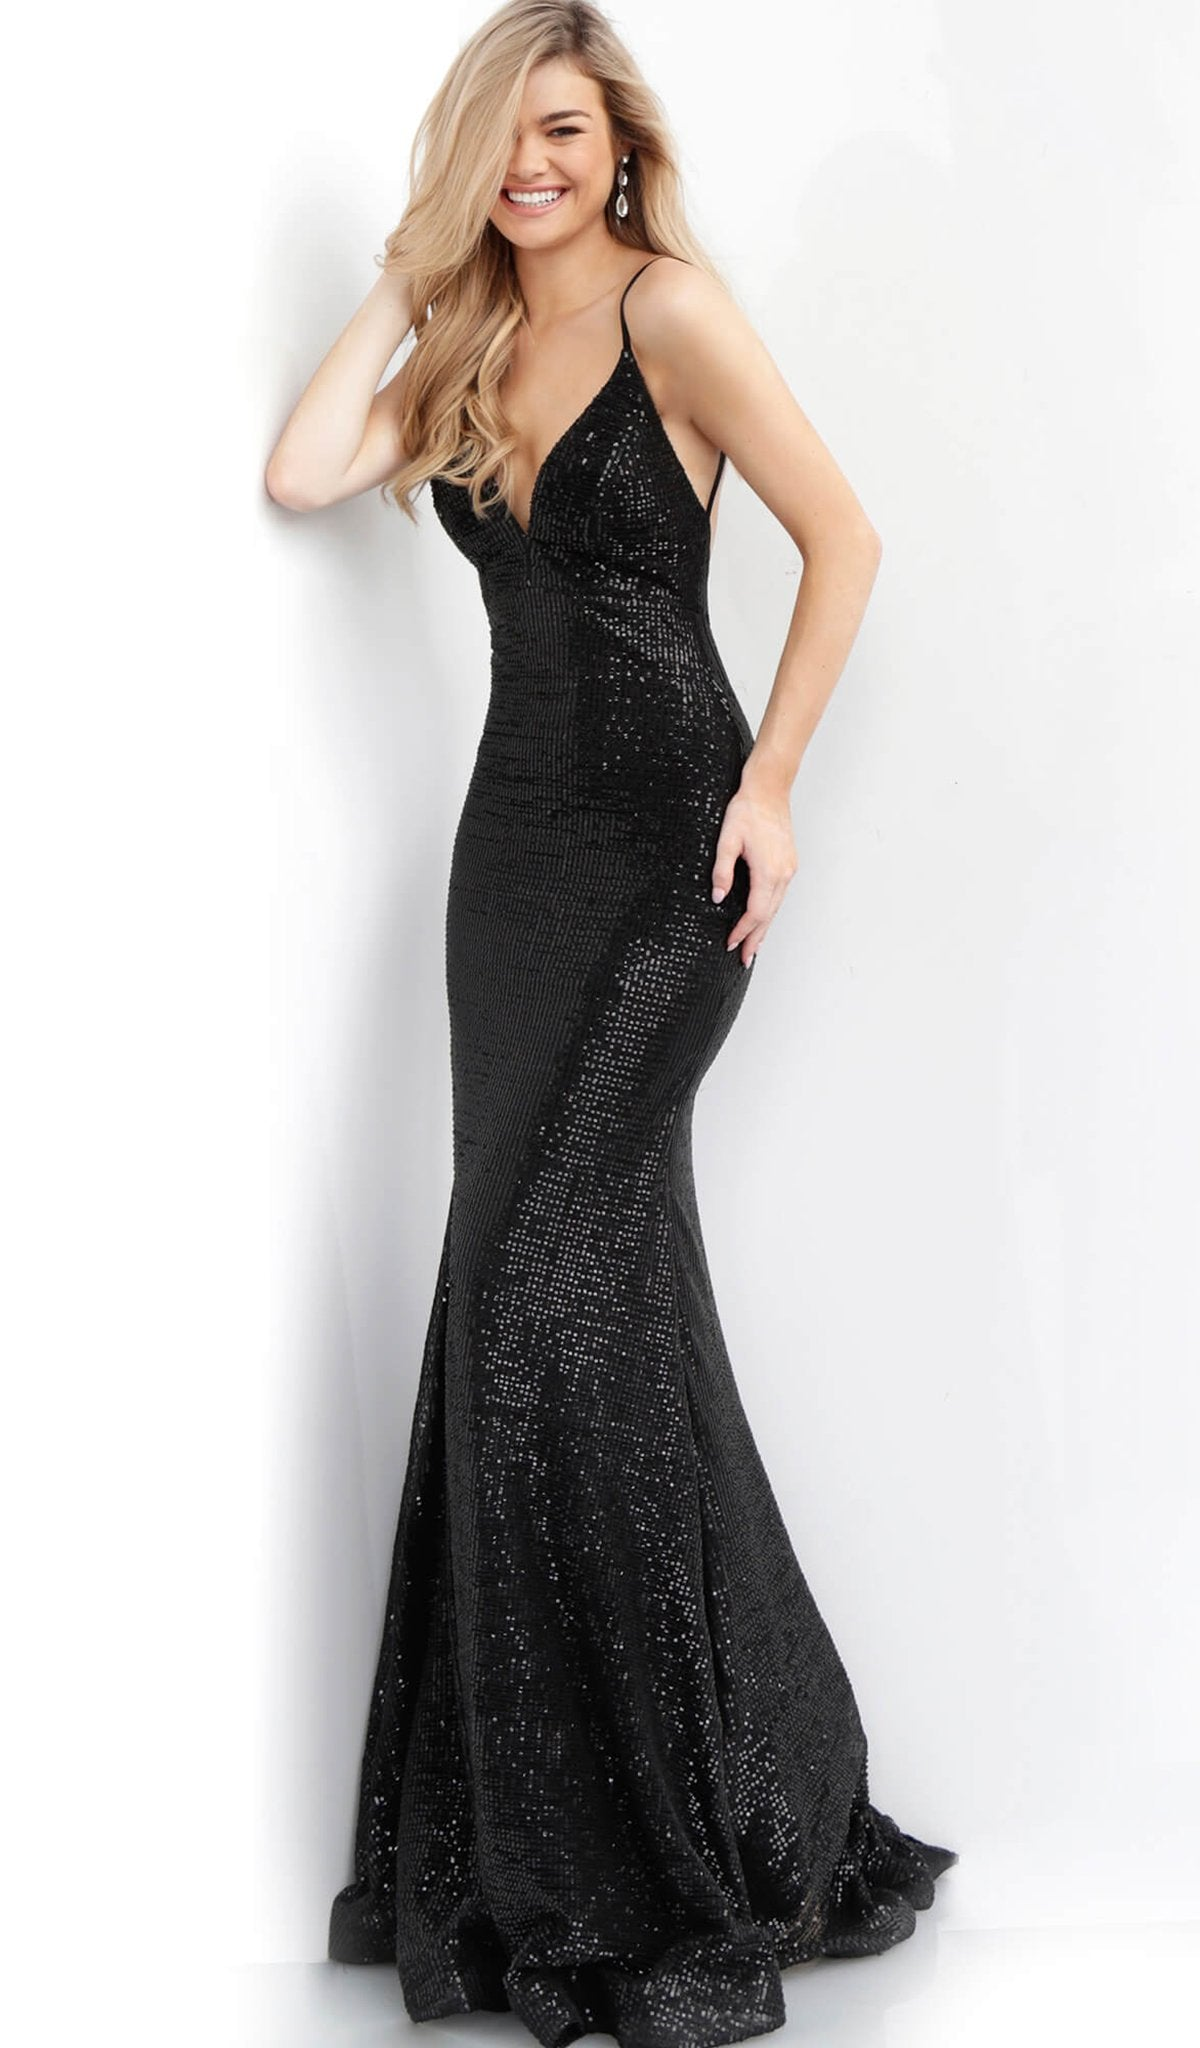 Jovani - 59691 Sequined Backless Mermaid Gown in Black